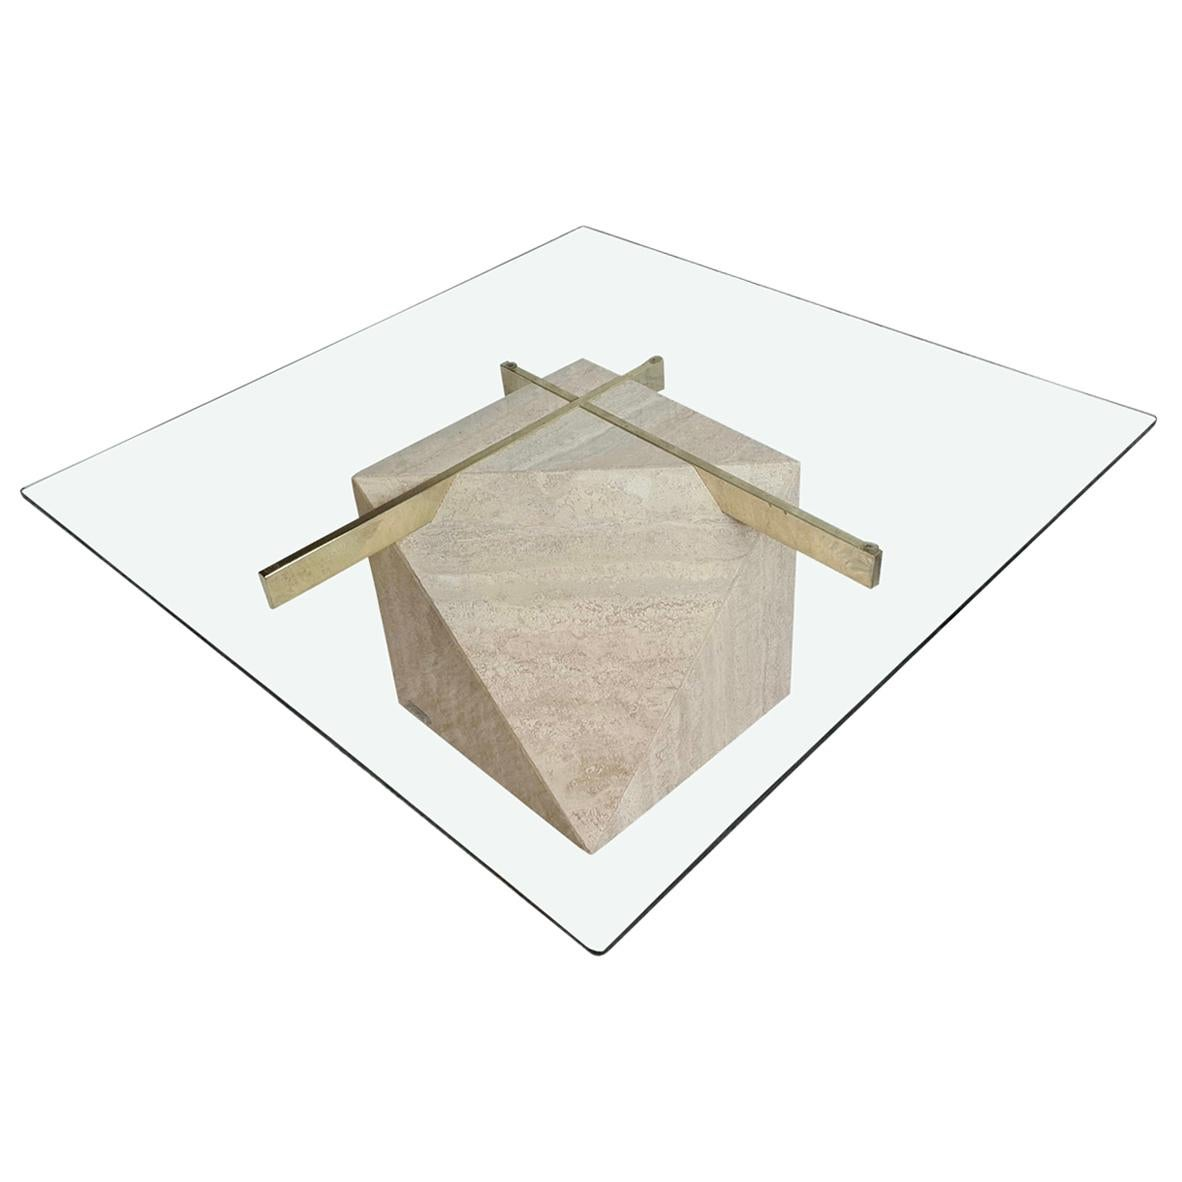 Mid Century 'Artedi' Travertine, Brass and Glass Coffee, Occasional Table, 1970s